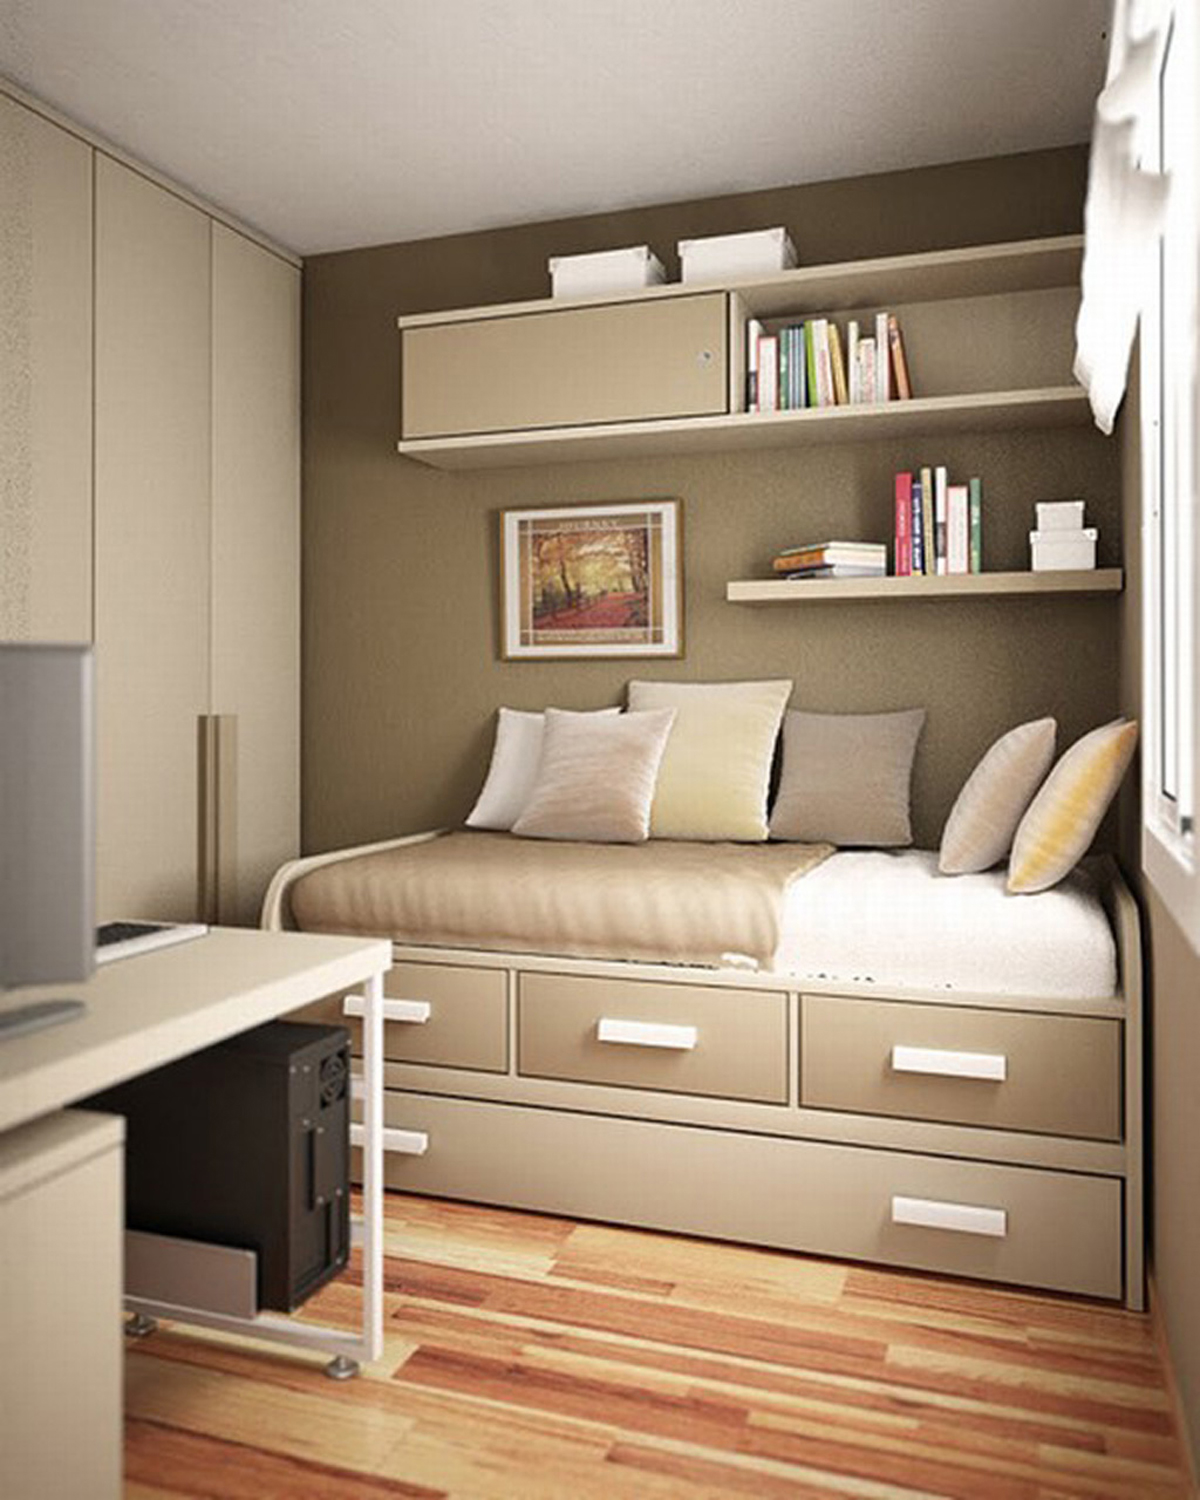 remodeling small bedroom, Bedroom decor